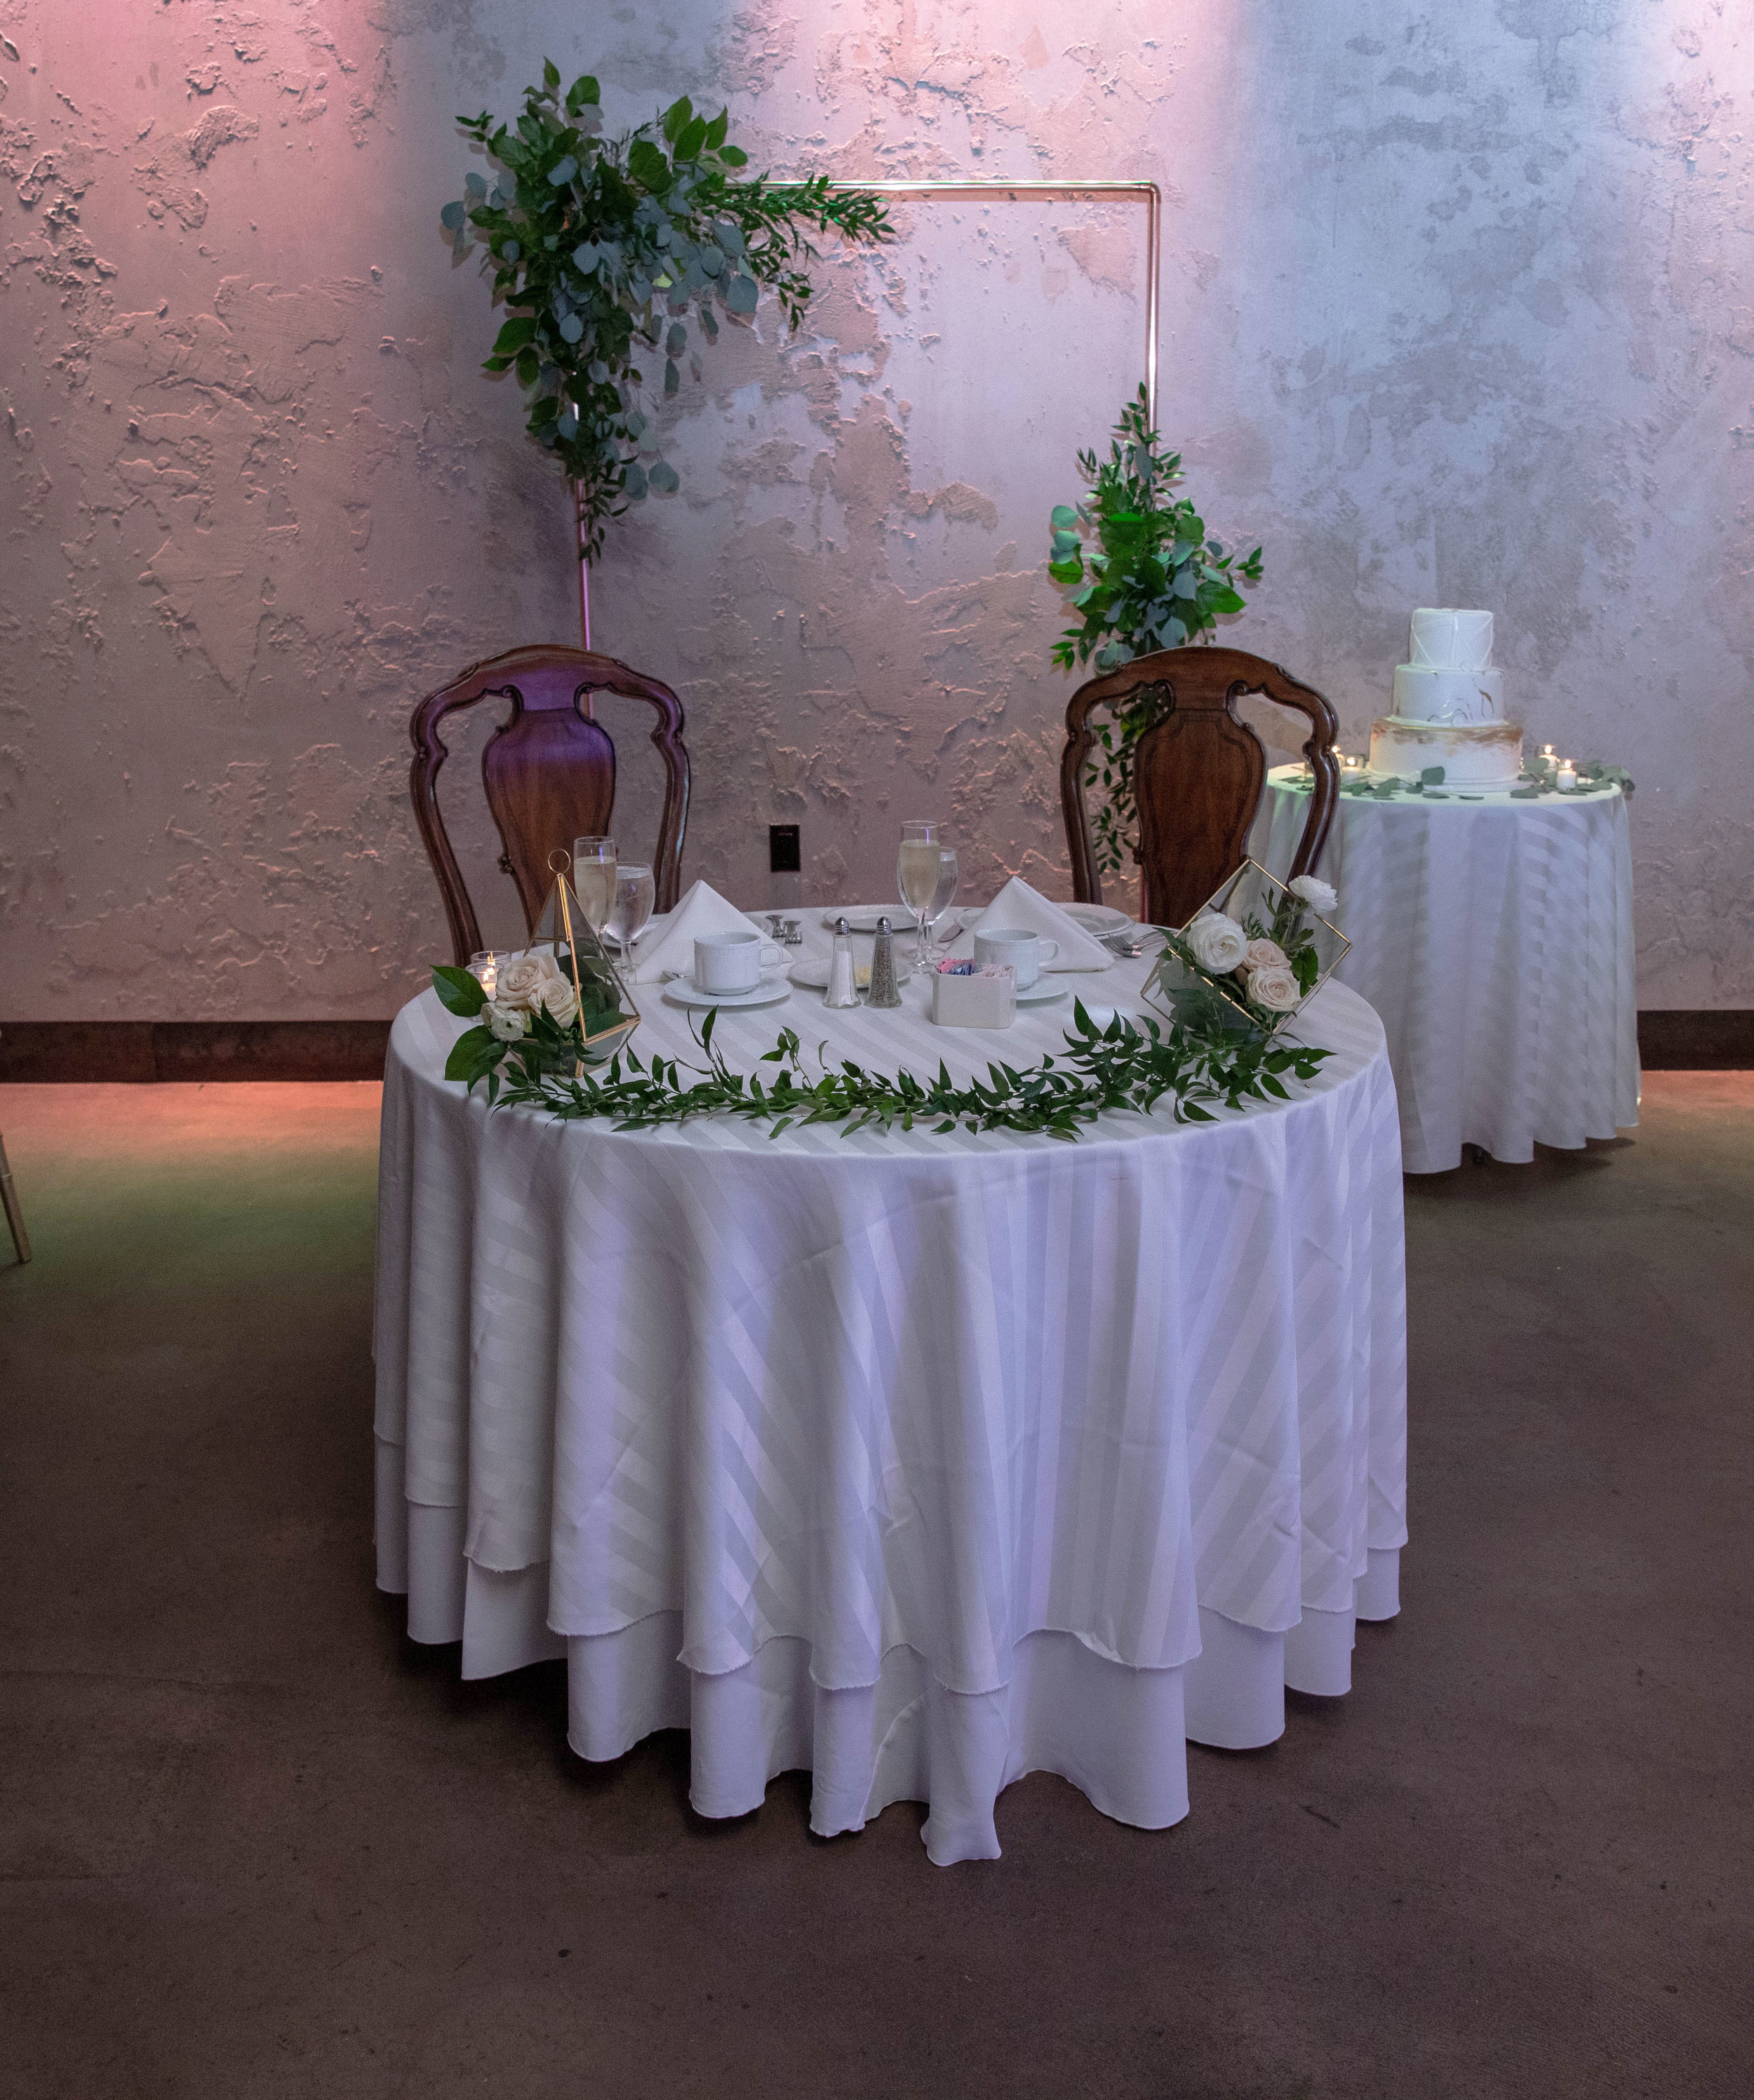 Evelisa Floral & Design_Full Sweetheart table design_Cropped.jpg